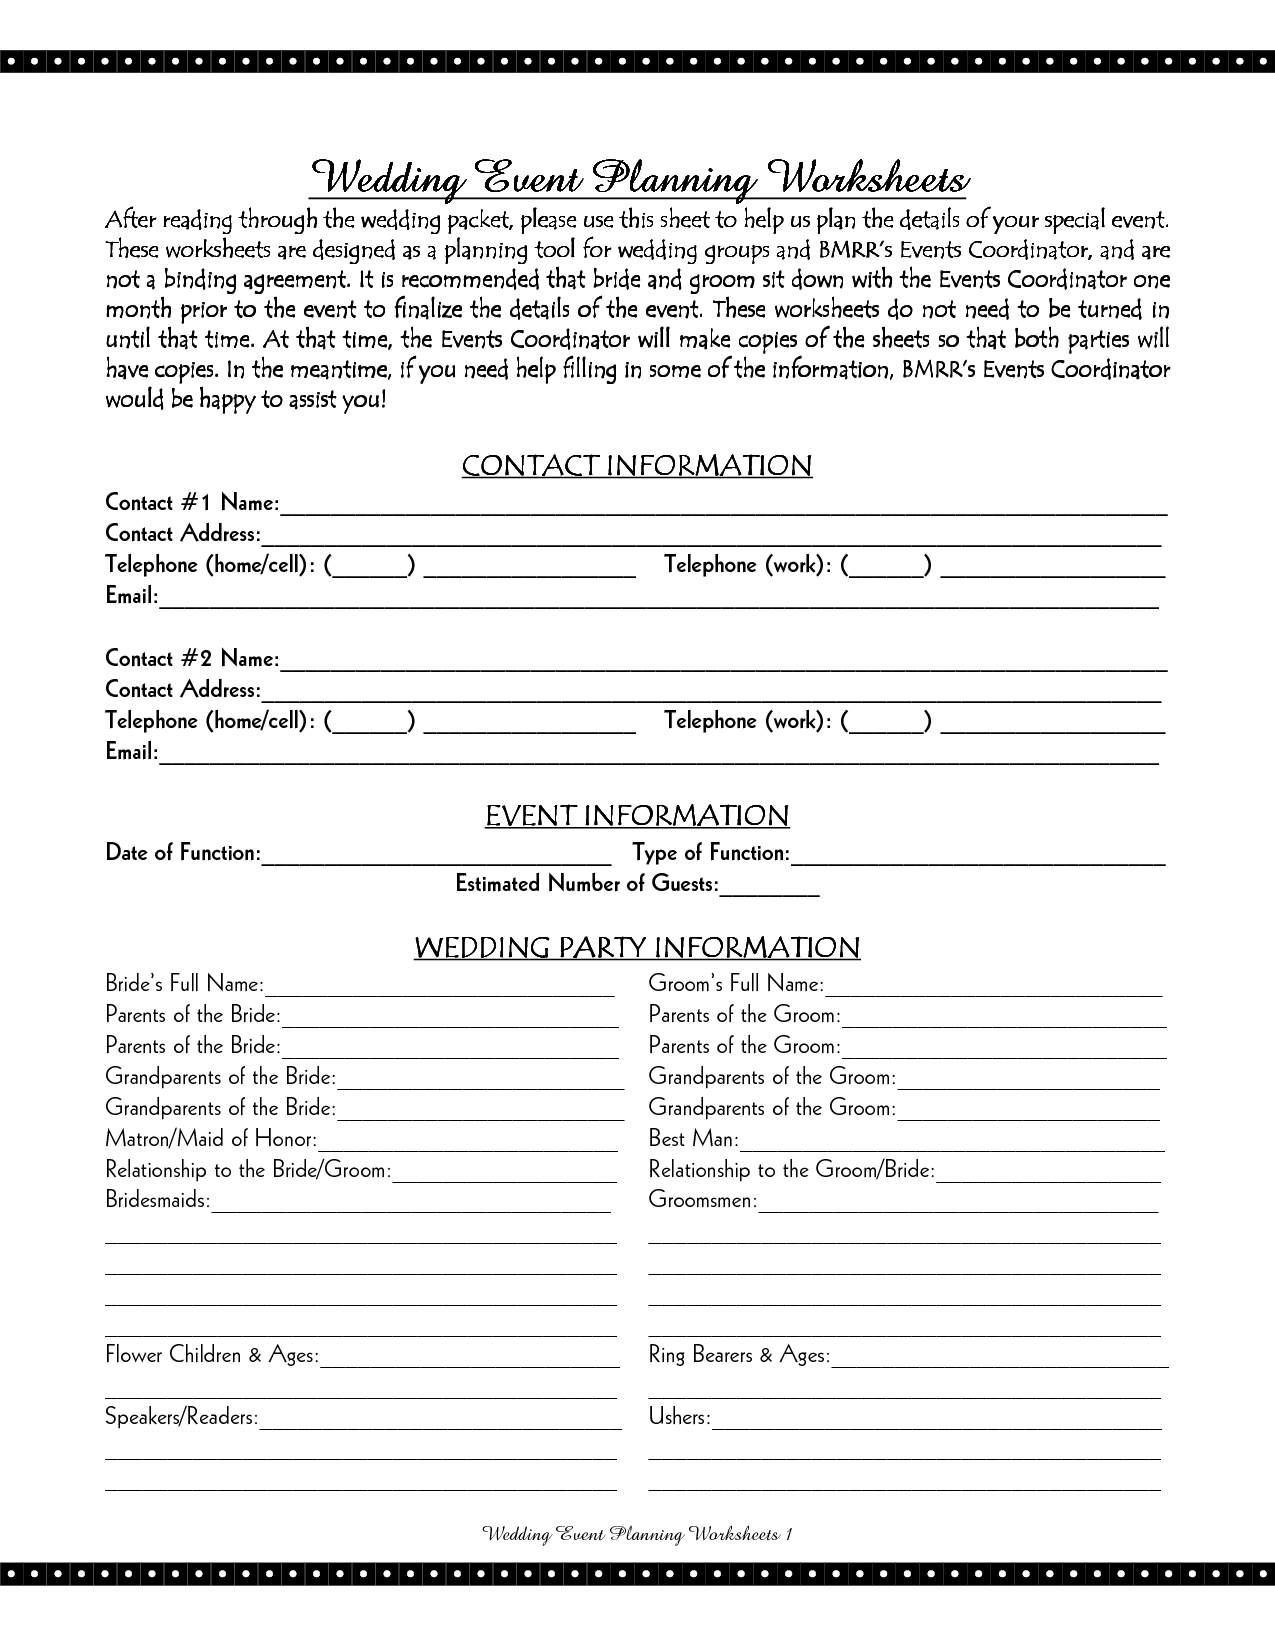 Reception Planner Worksheet